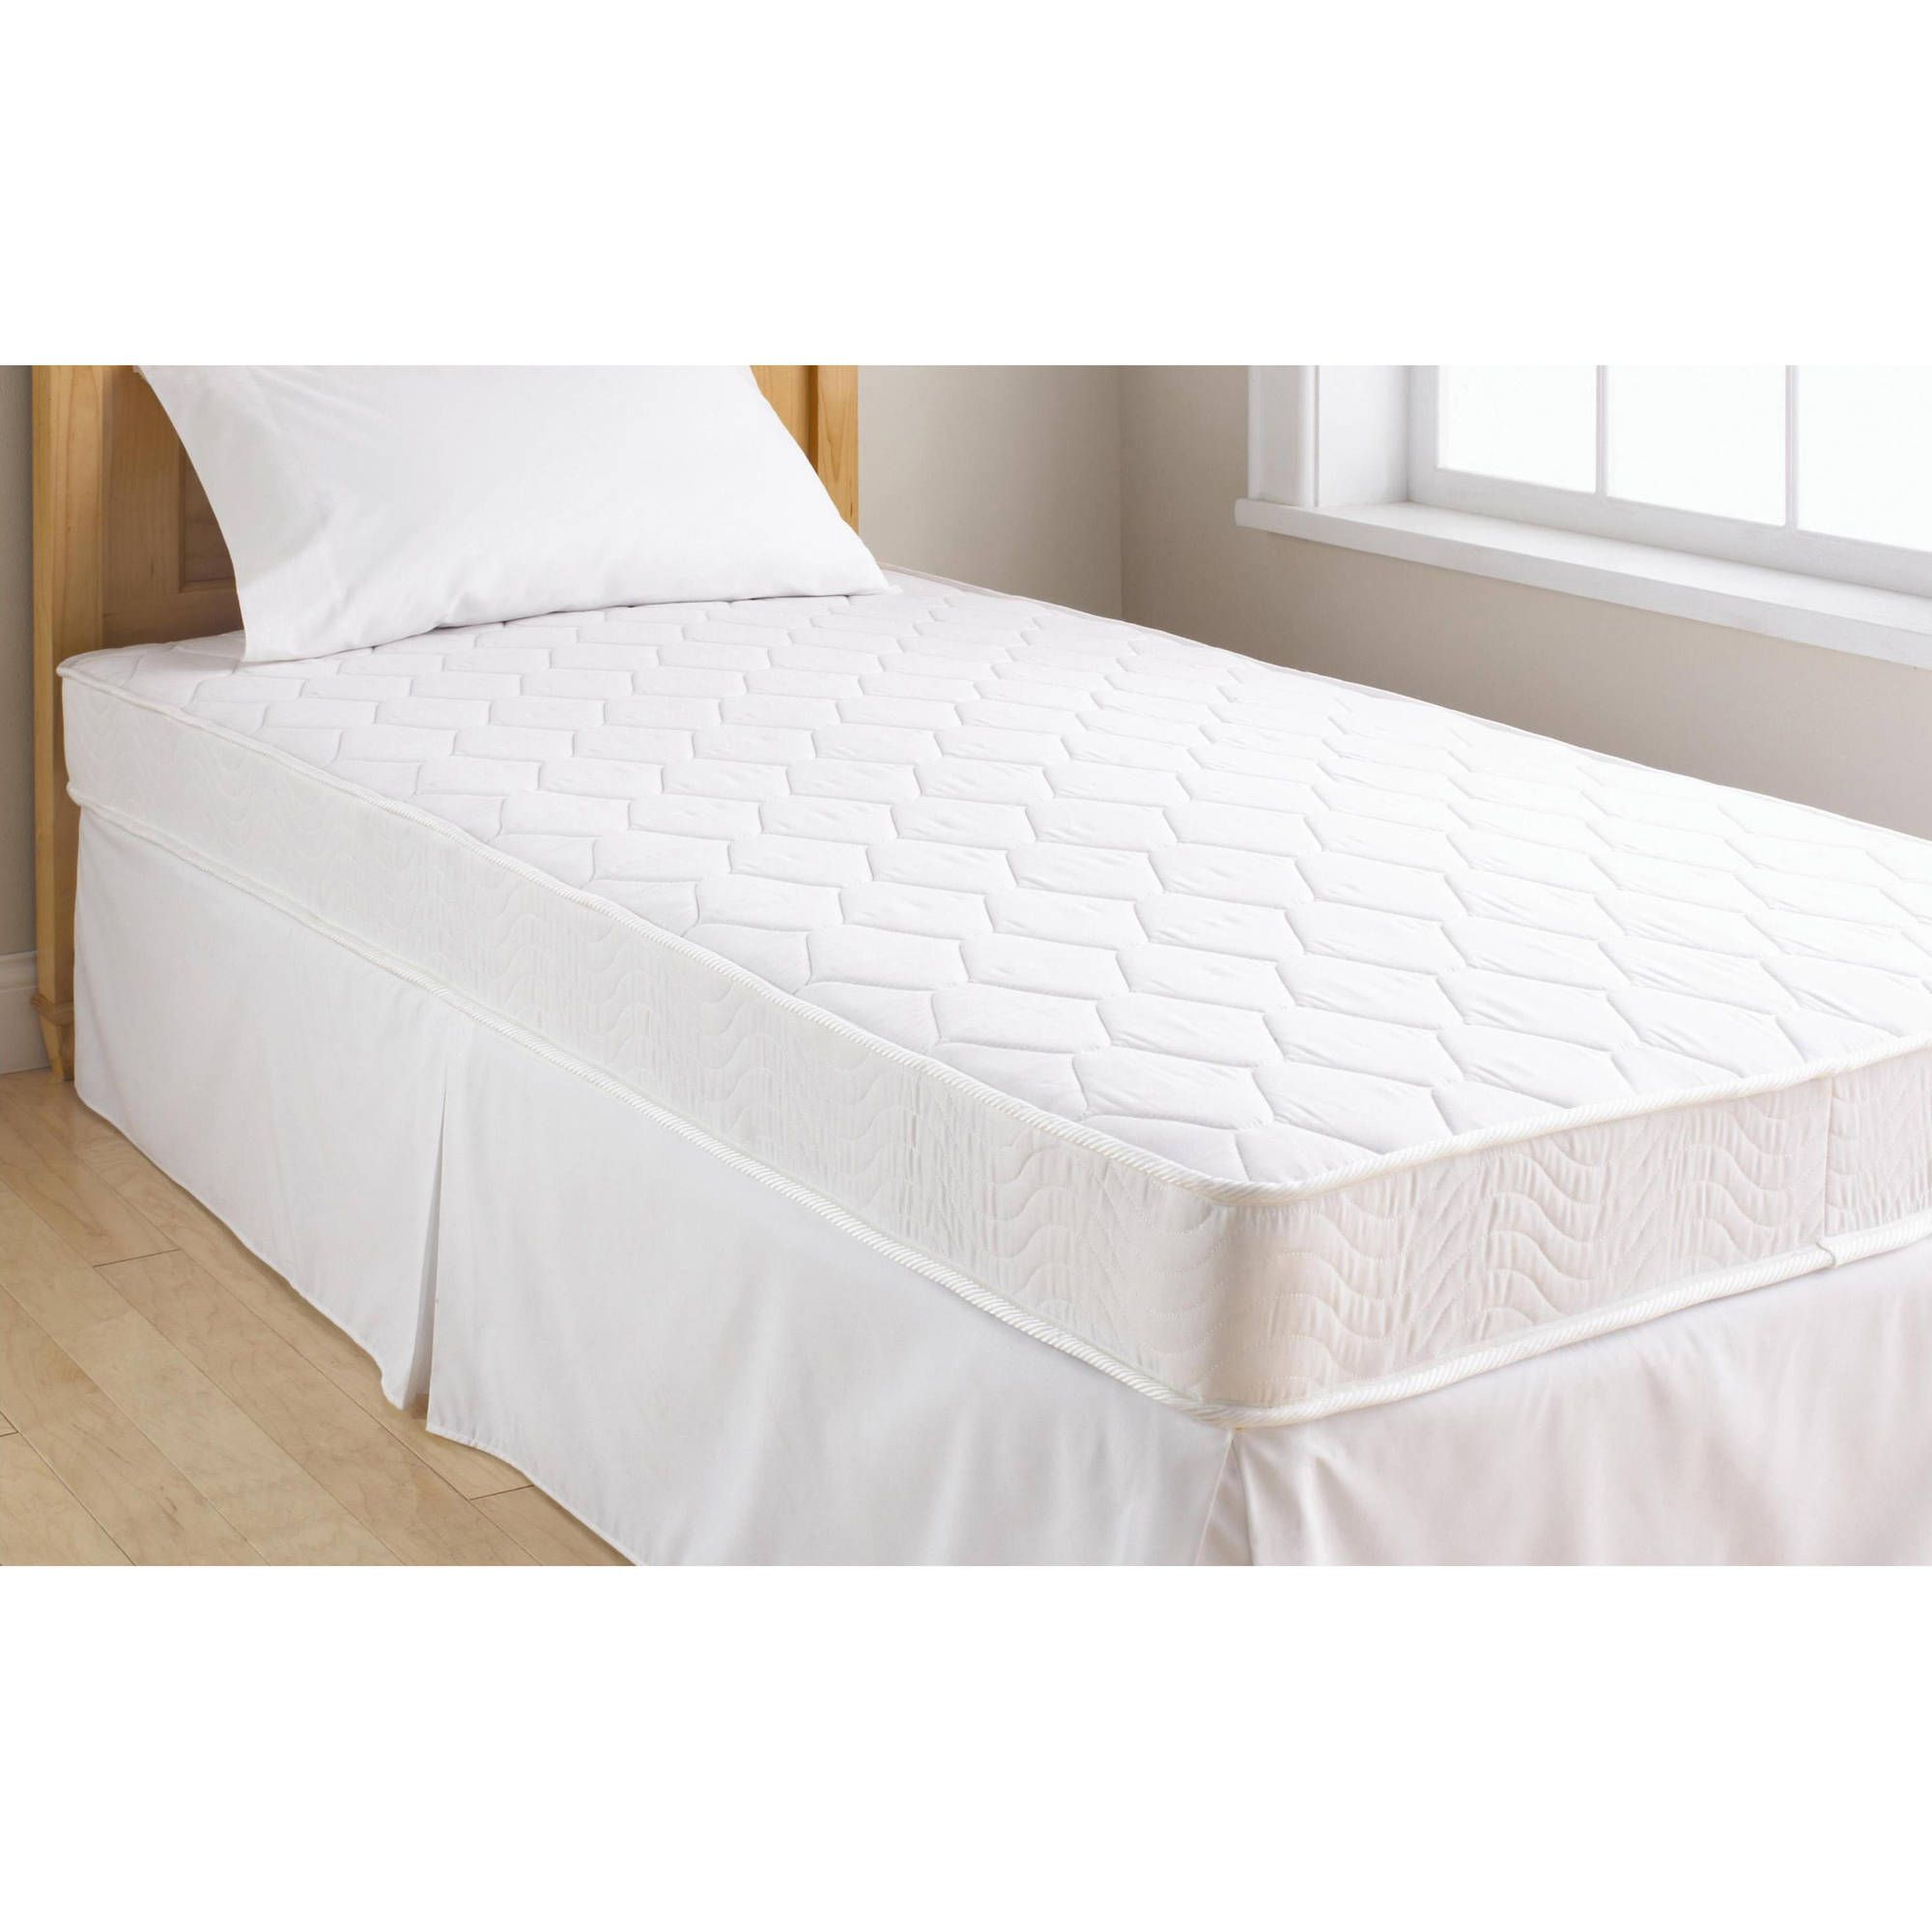 x dtavares pads extra bed mattress com pillow mainstays thick top pad